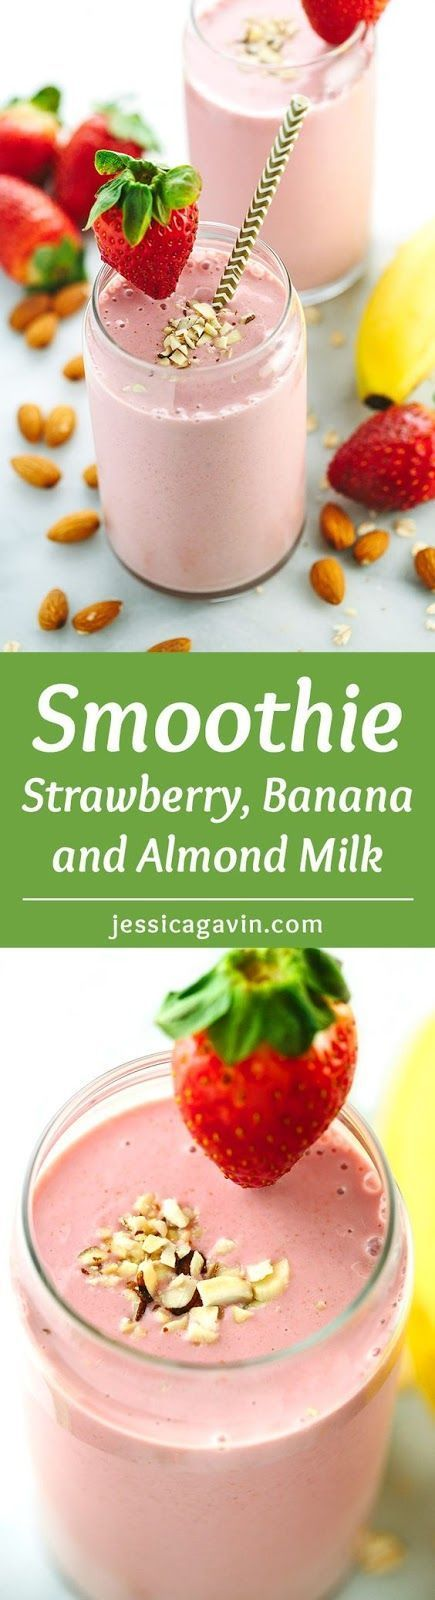 Strawberry Banana Smoothie with Almond Milk  Smoothie Smooth Shakes and Floats #healthystrawberrybananasmoothie Strawberry Banana Smoothie with Almond Milk  Smoothie Smooth Shakes and Floats #strawberrybananasmoothie